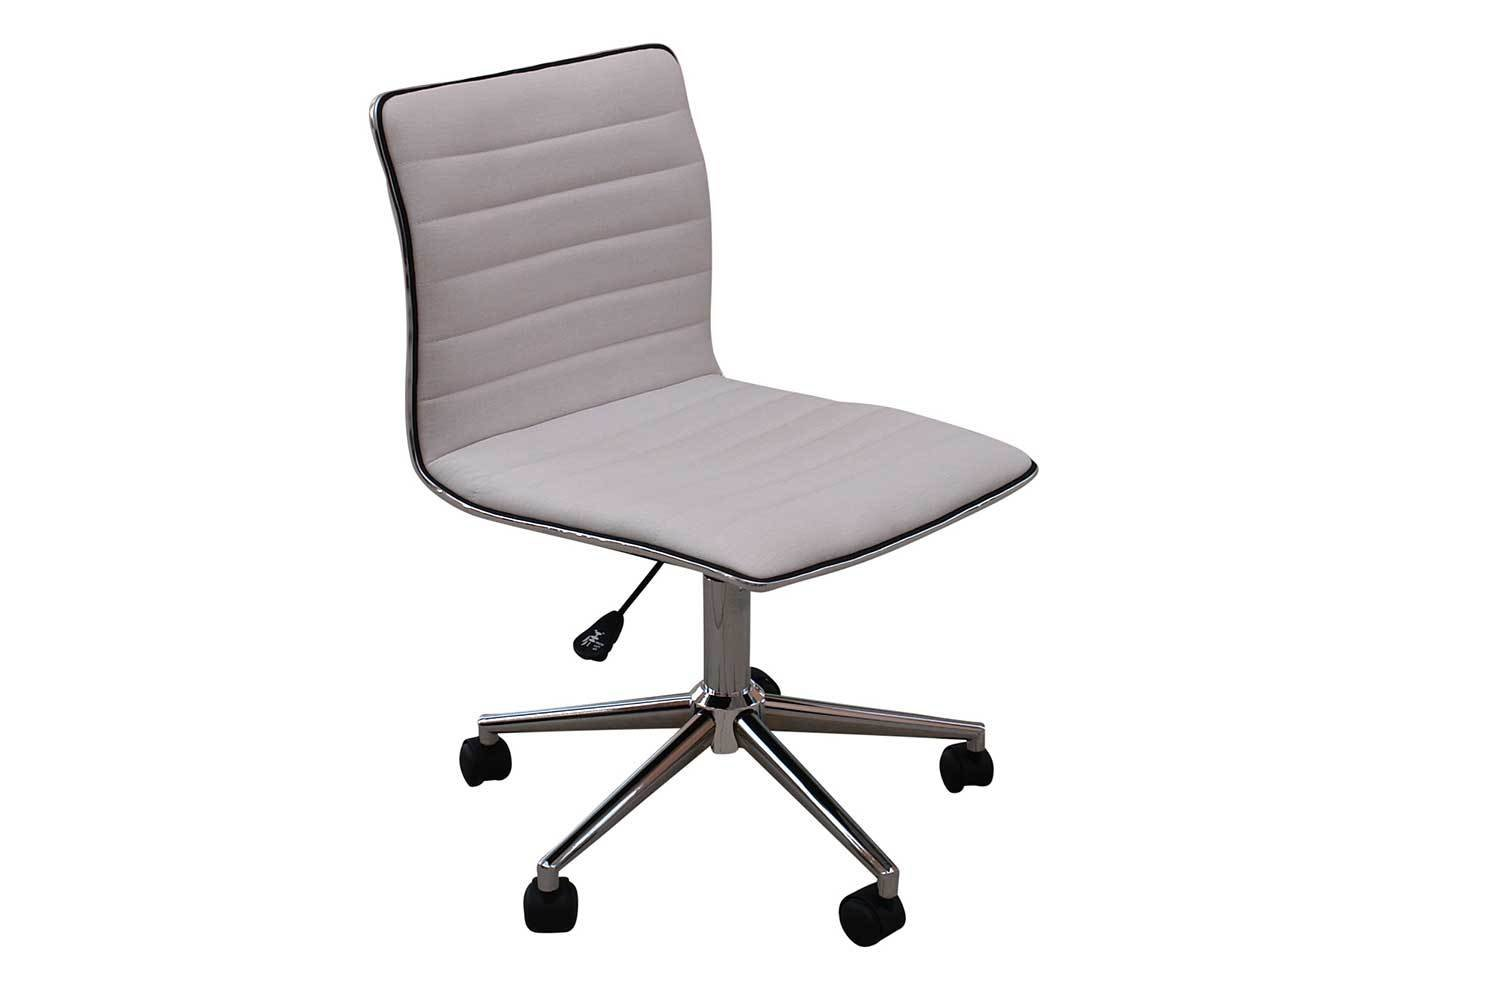 White Midback Chair 5139